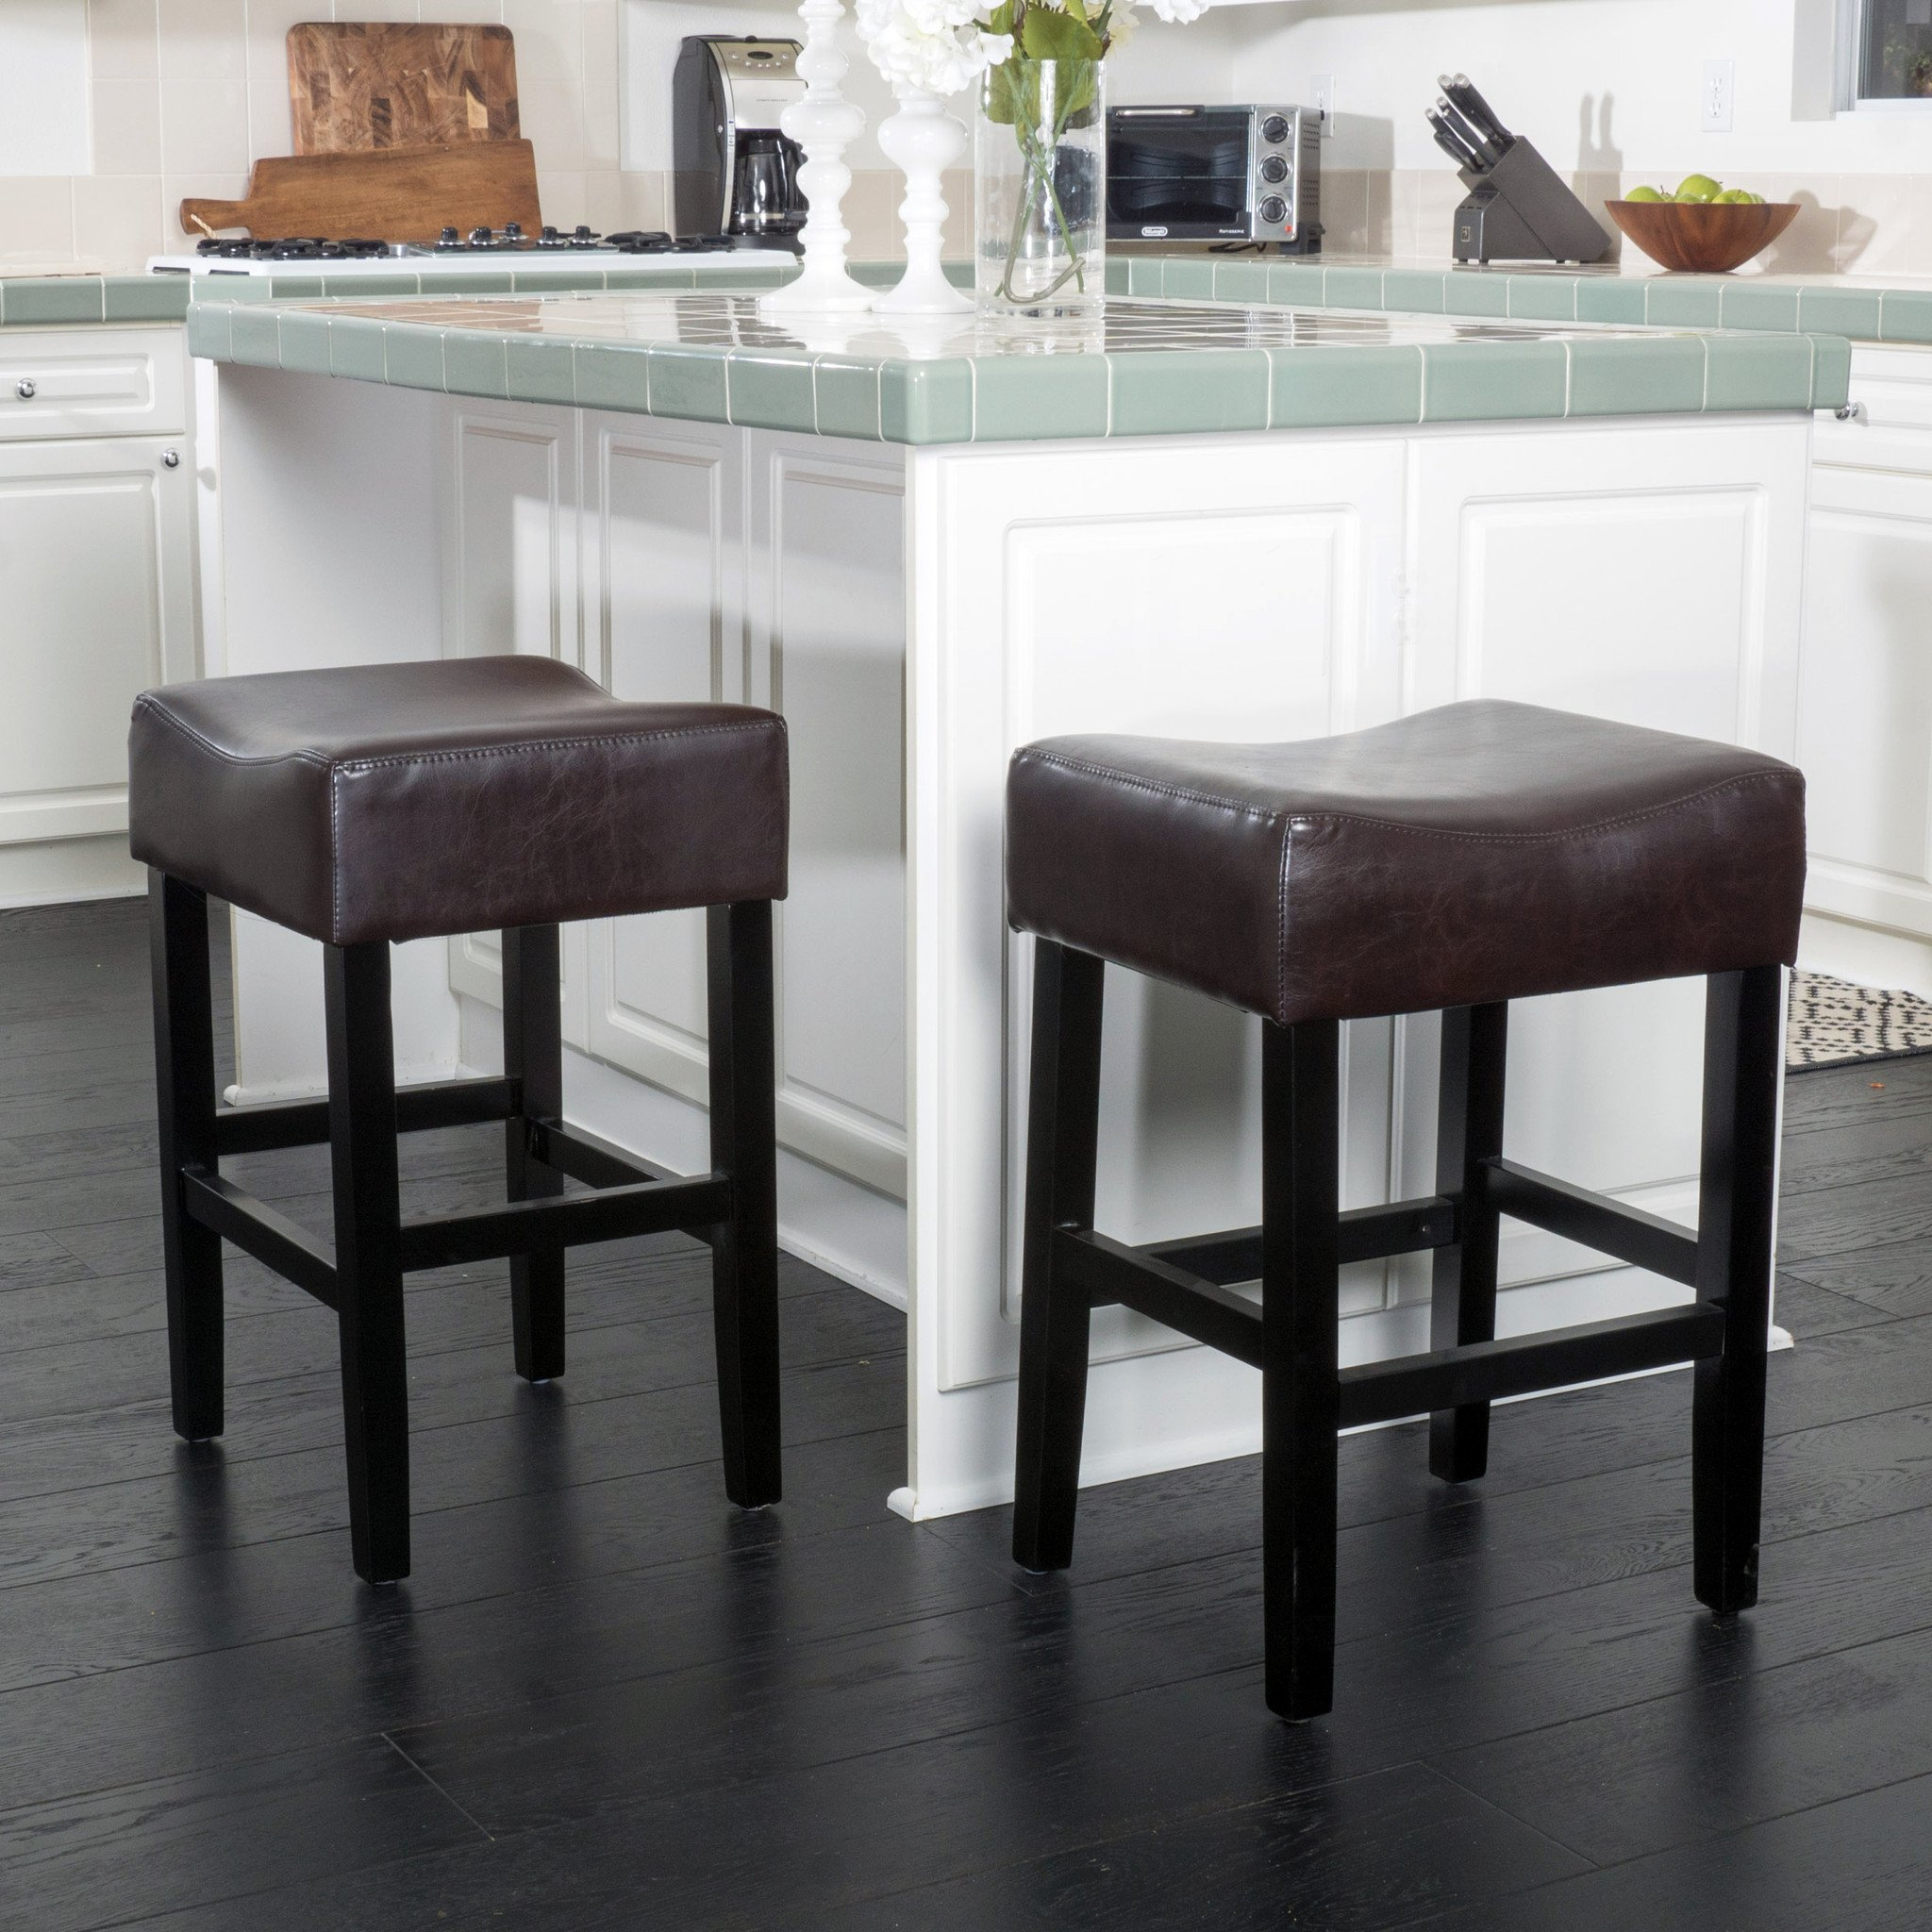 Adler Brown Leather Backless Counter Stool Set of 2 The elegant